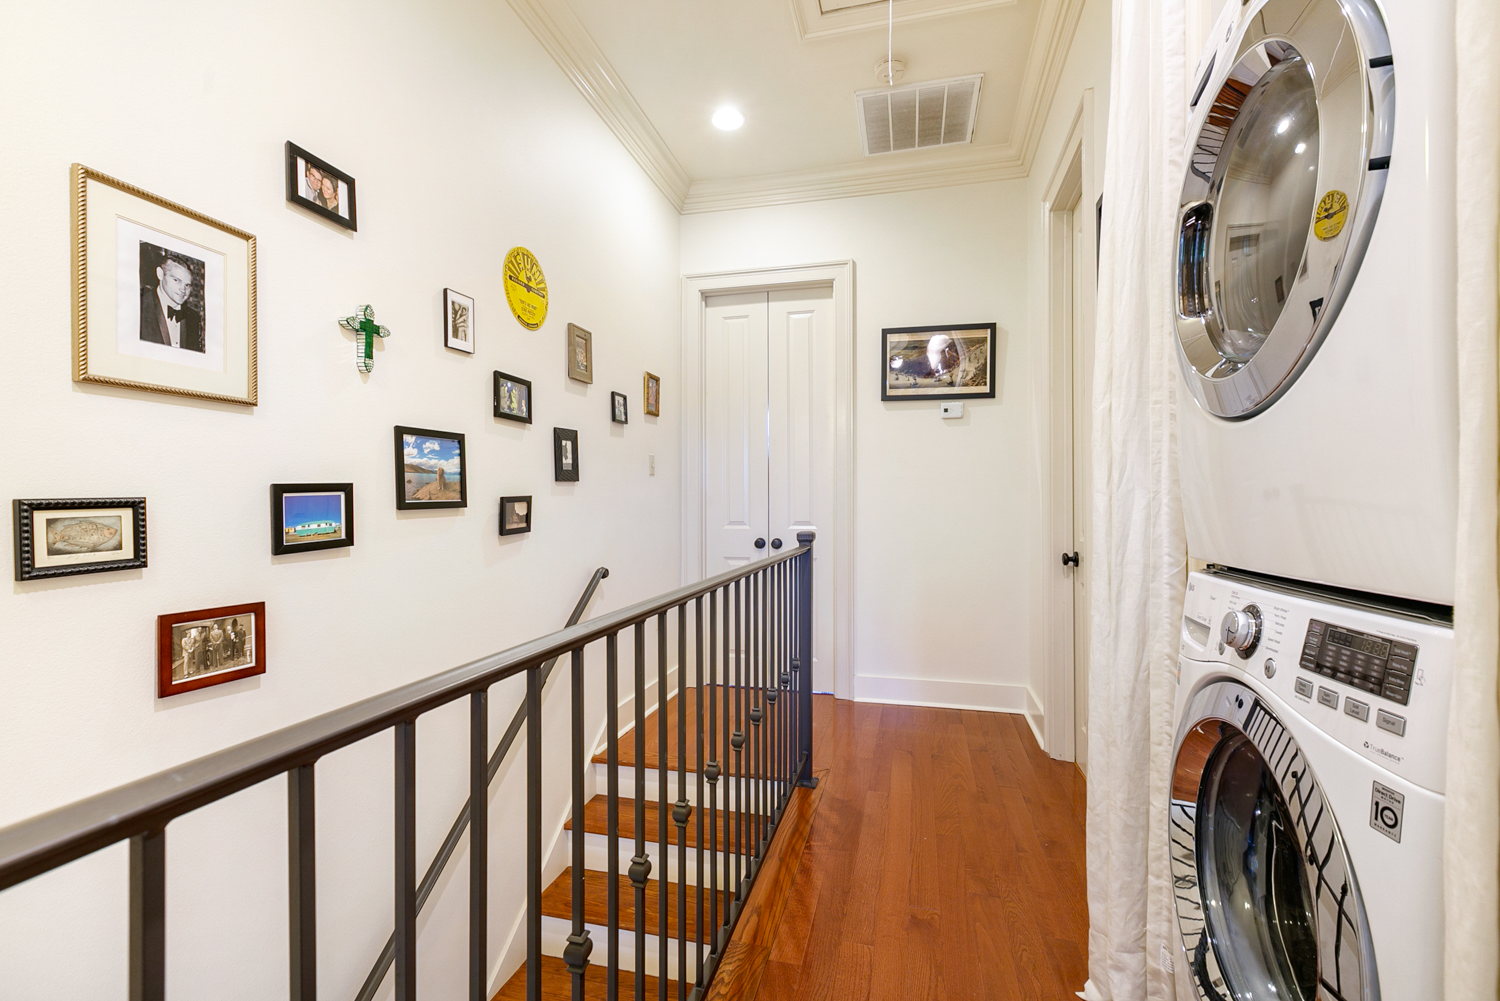 Uptown, Condo, 2 beds, 1.5 baths, $2500 per month New Orleans Rental - devie image_8